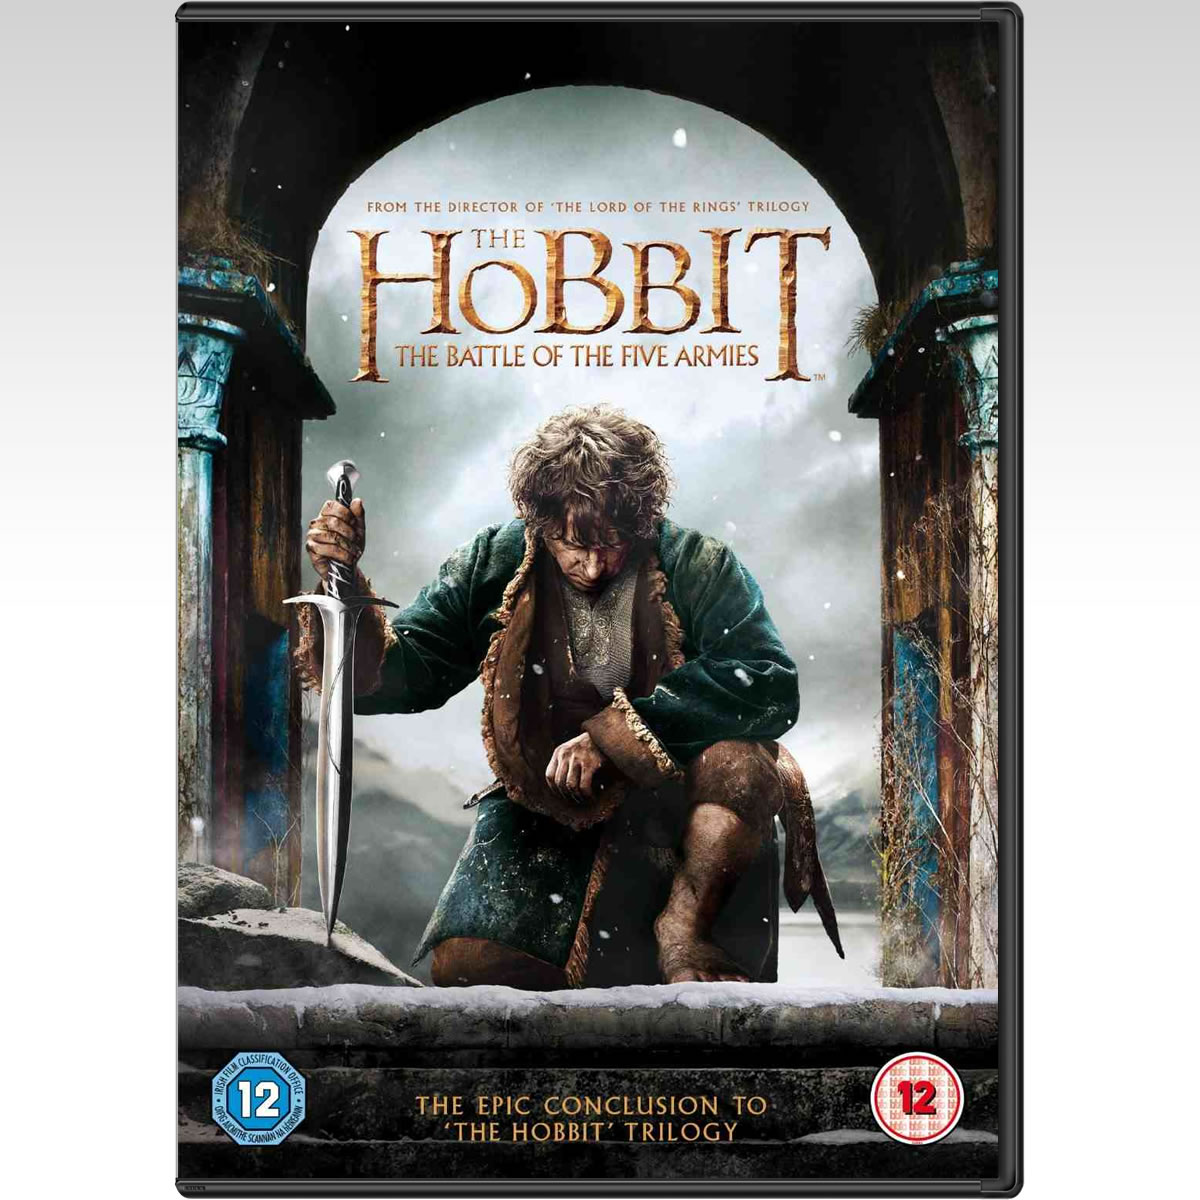 THE HOBBIT: THE BATTLE OF THE FIVE ARMIES - ������: � ���� ��� ����� ������� (DVD)